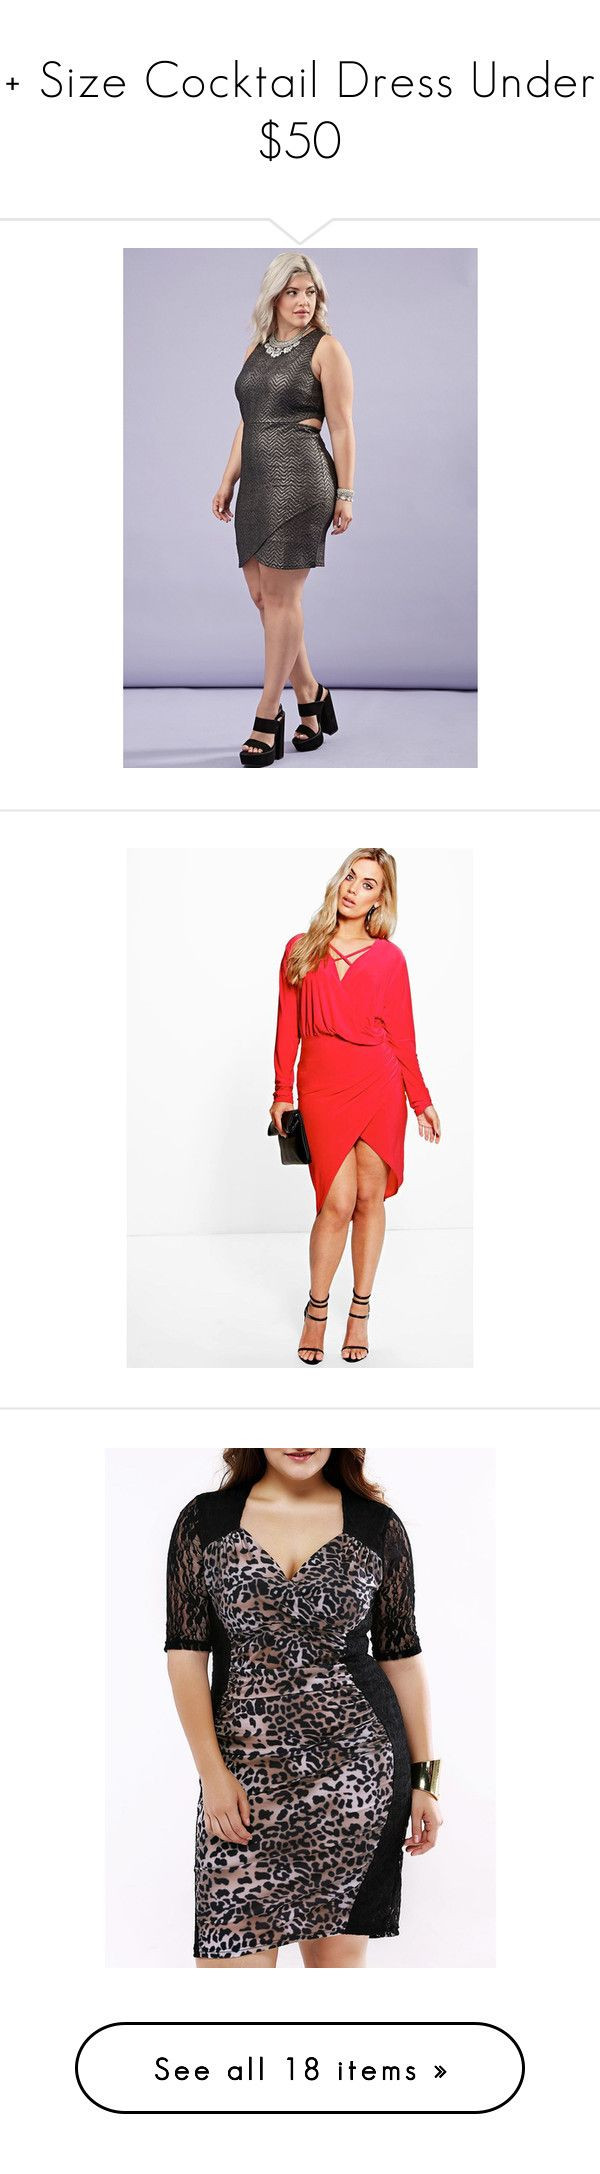 + Size Cocktail Dress Under $50 by poshclosetlv on Polyvore featuring polyvore, plus size women's fashion, plus size clothing, plus size dresses, plus size cocktail dresses, cutout bodycon dresses, plus size body con dresses, cut out bodycon dress, cut out dresses, women's fashion, clothing, dresses, red, white tuxedo, white sequin dress, red maxi dress, white maxi dress, red cocktail dress, leopard dresses, plunging neckline dress, plunging neckline cocktail dress, leopard cocktail dress…